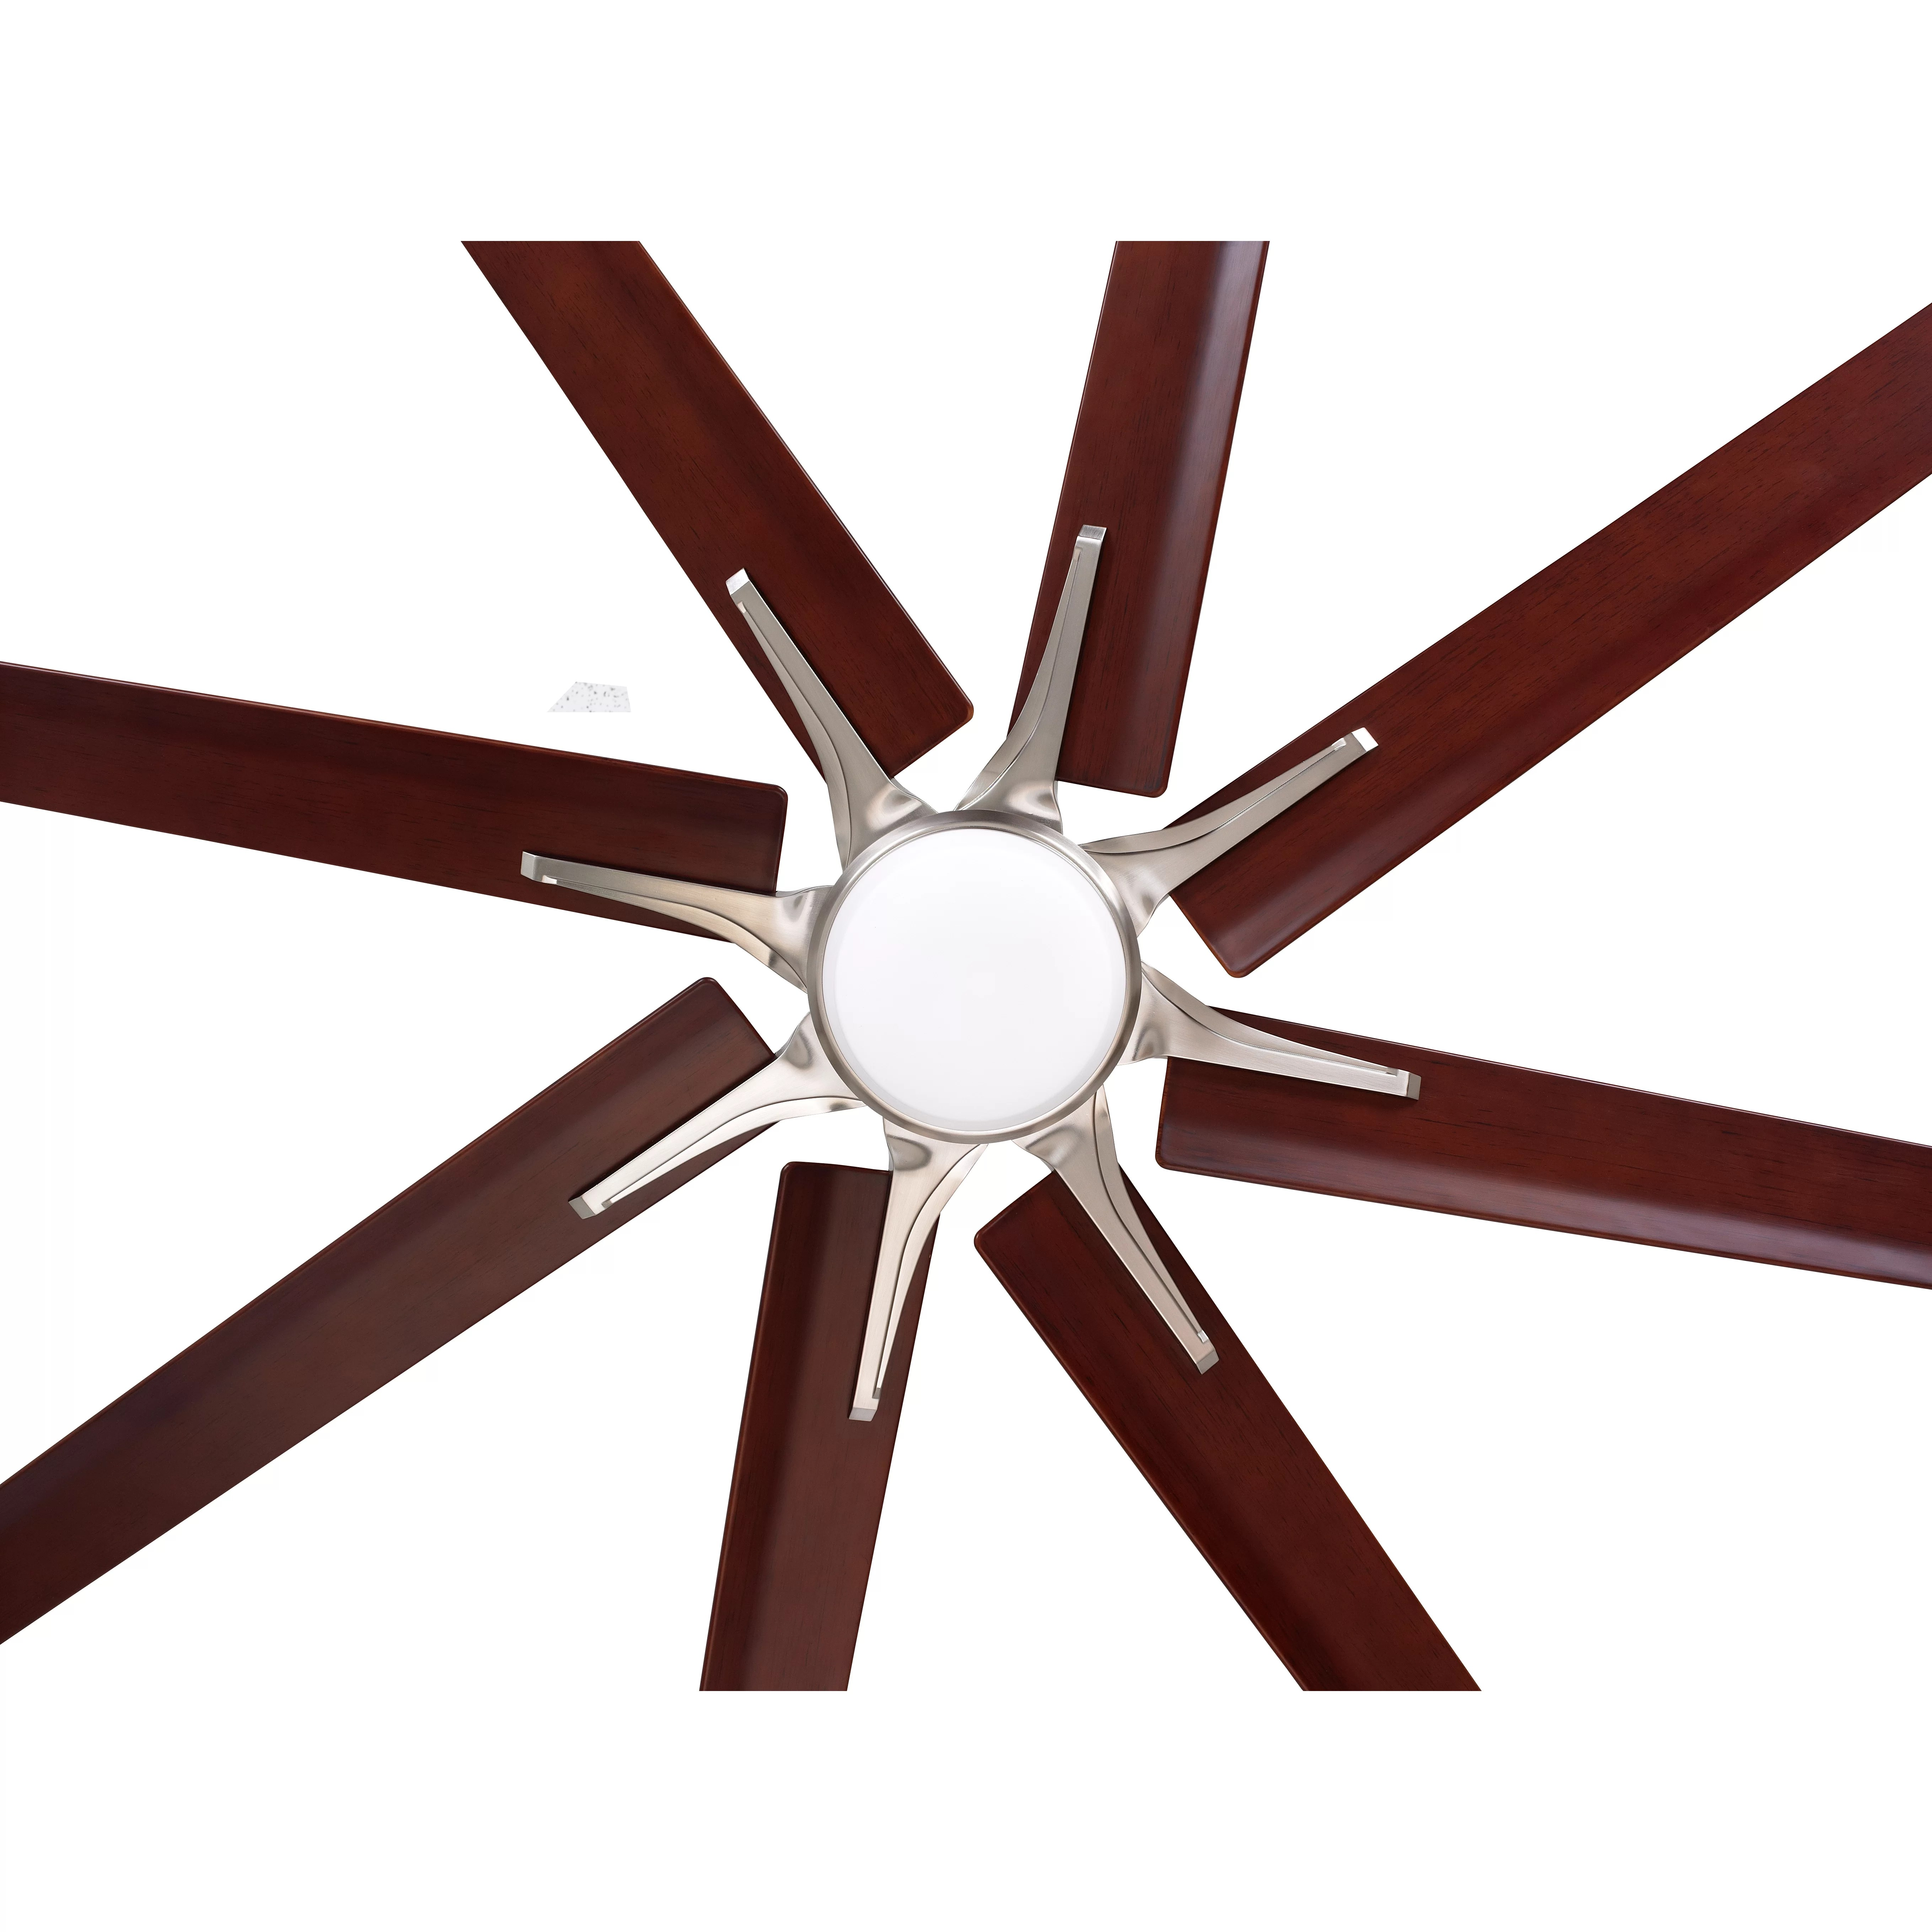 Eight Bladed Ceiling Fan Emerson Fans 72 Quot Aira Eco 8 Blade Ceiling Fan And Reviews